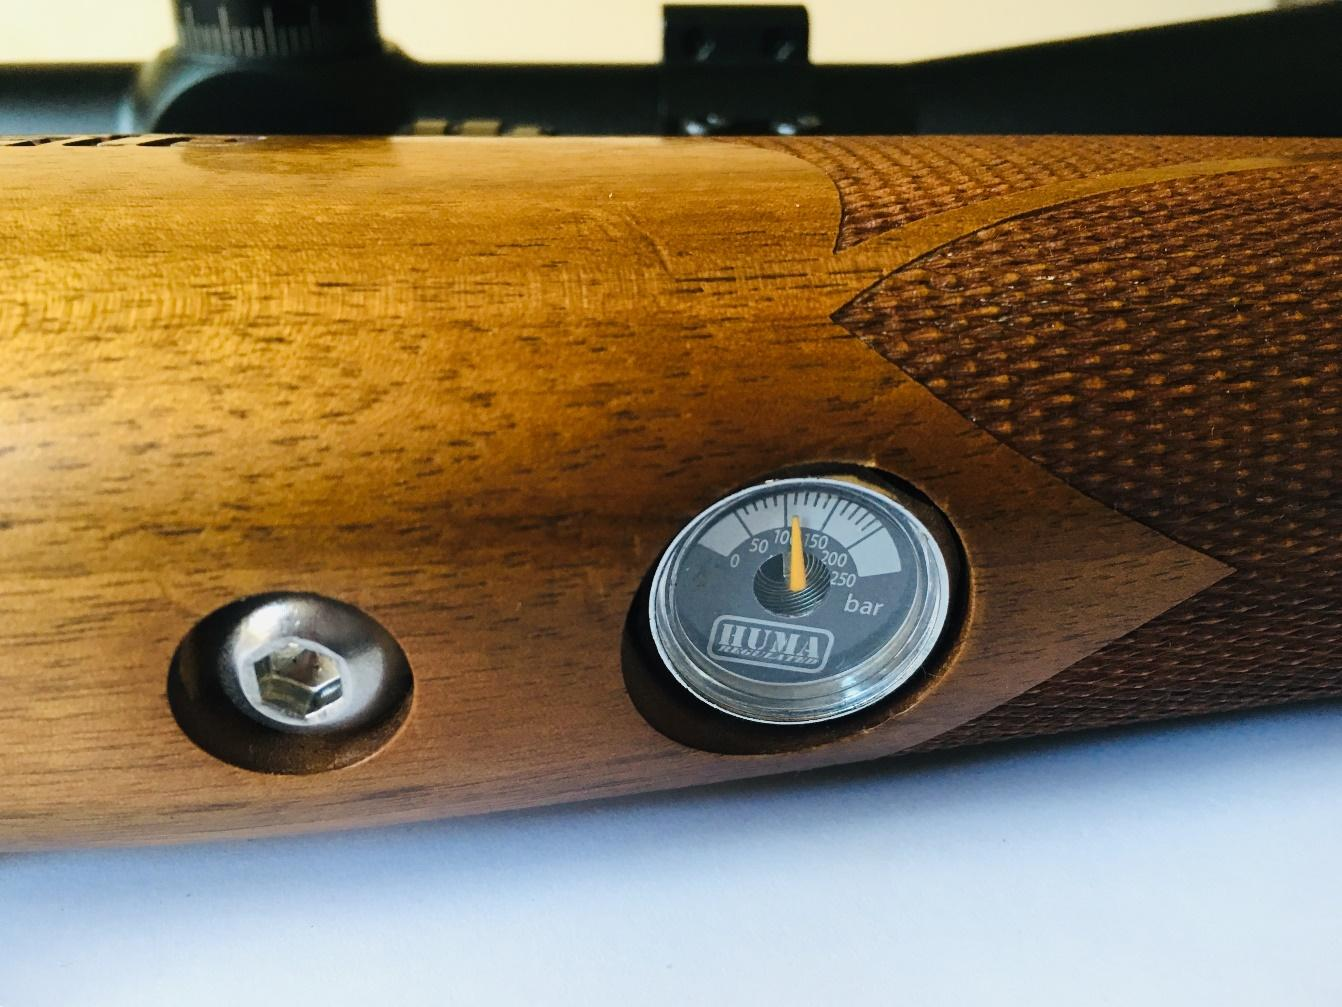 The pressure guage on the side of the rifle